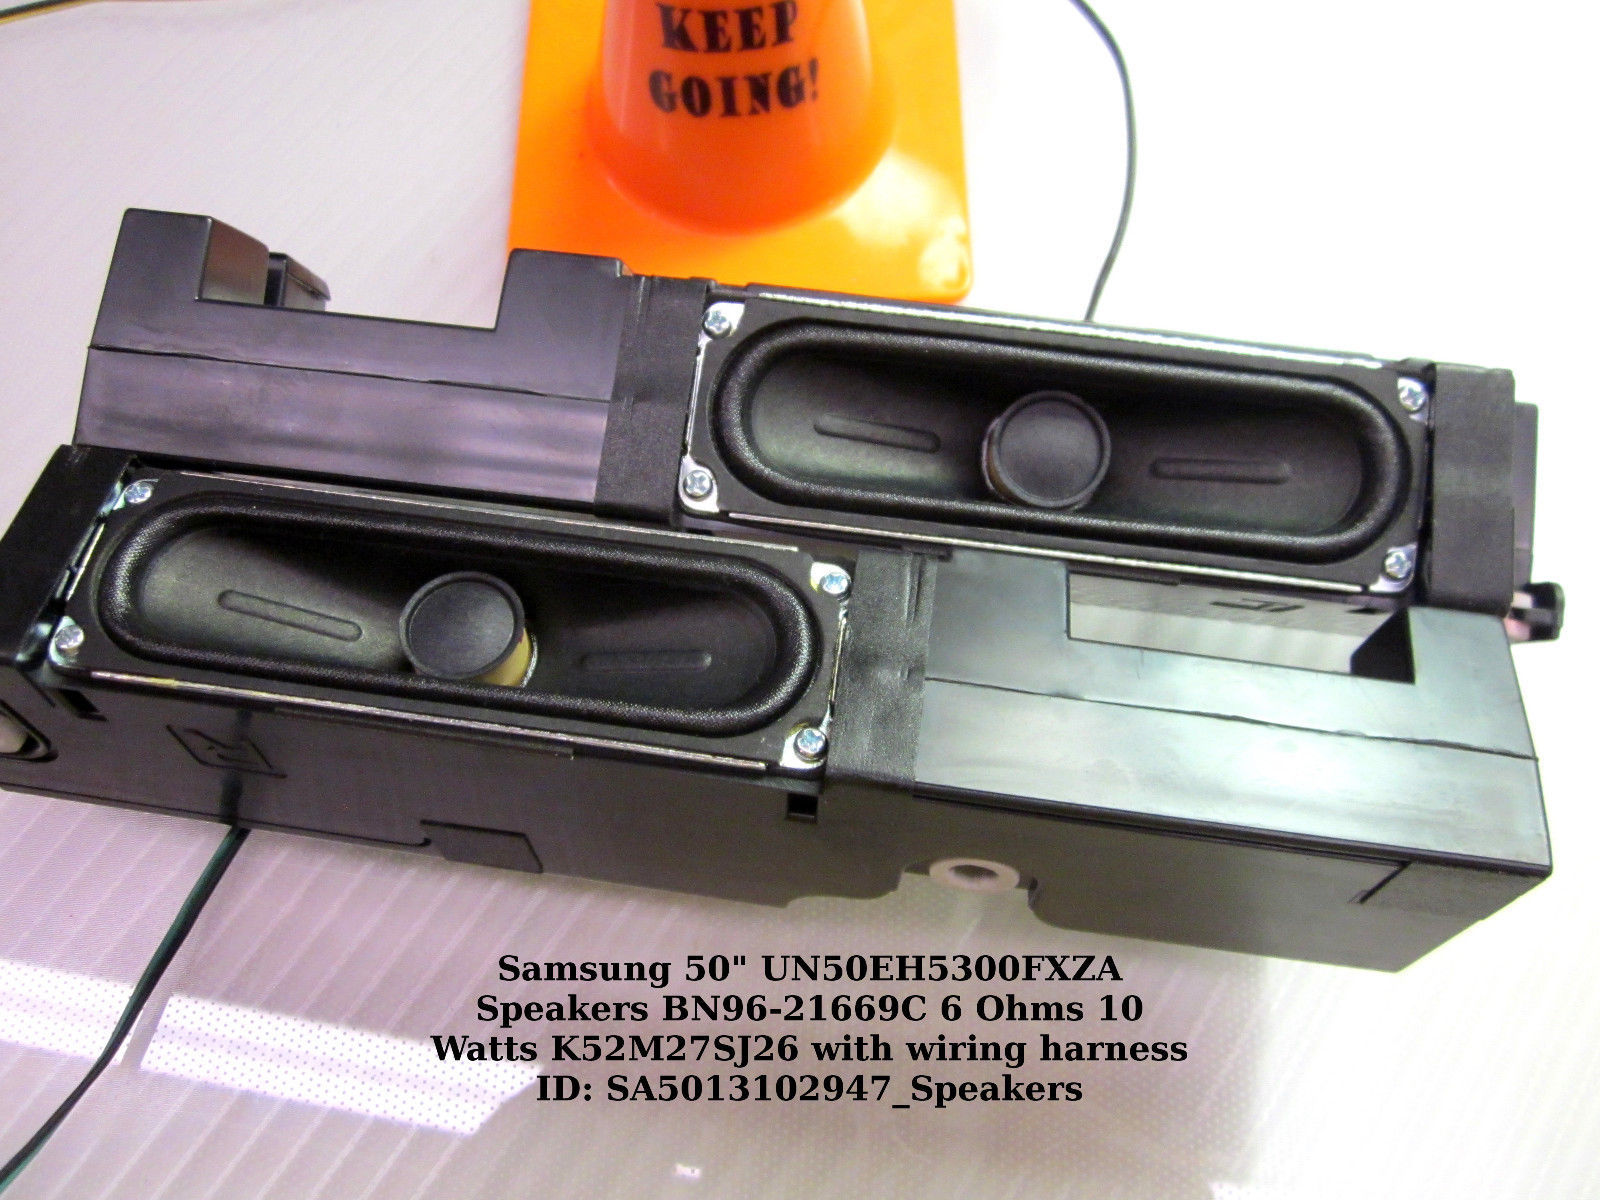 "Primary image for Samsung 50"" UN50EH5300FXZA Speakers BN96-21669C 6 Ohms 10 Watts K52M27SJ26"